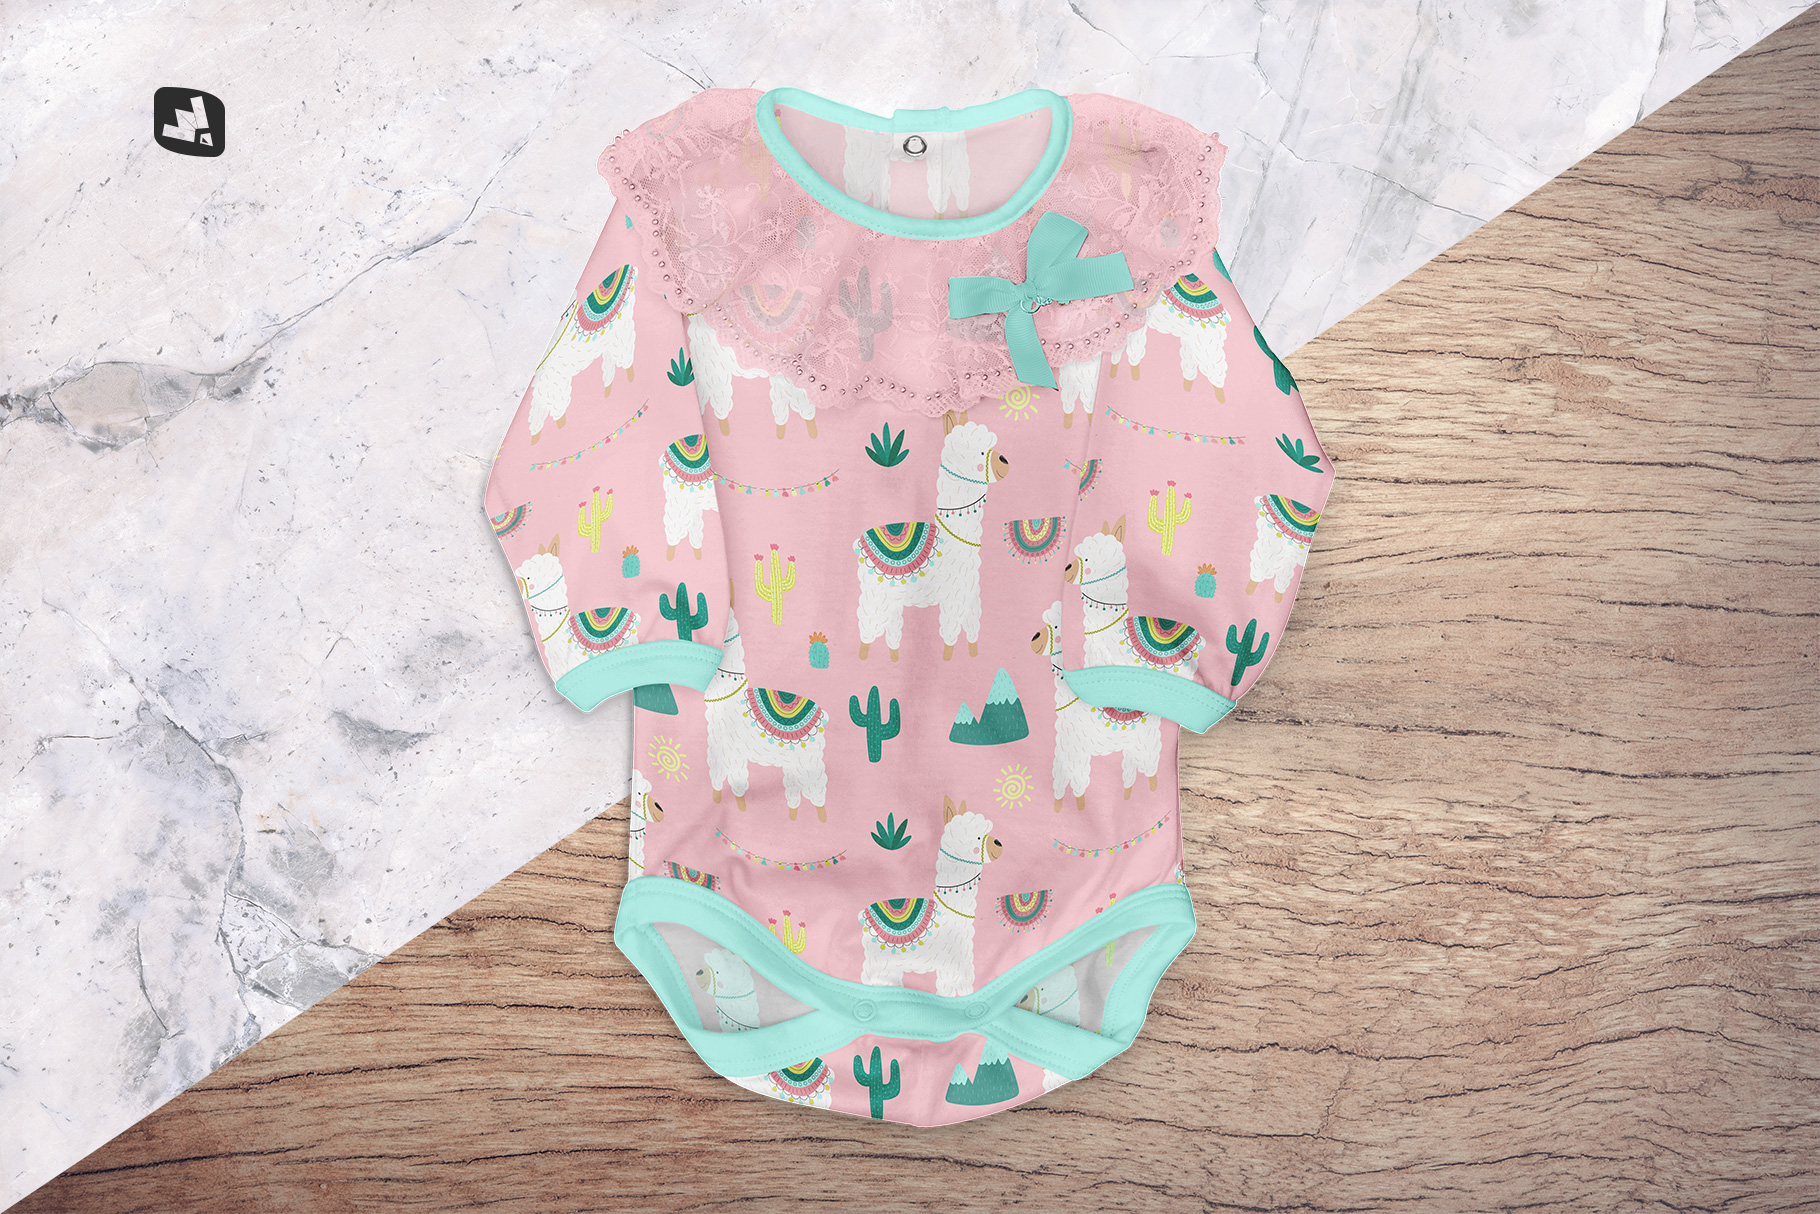 background options of the baby girl's onesie mockup